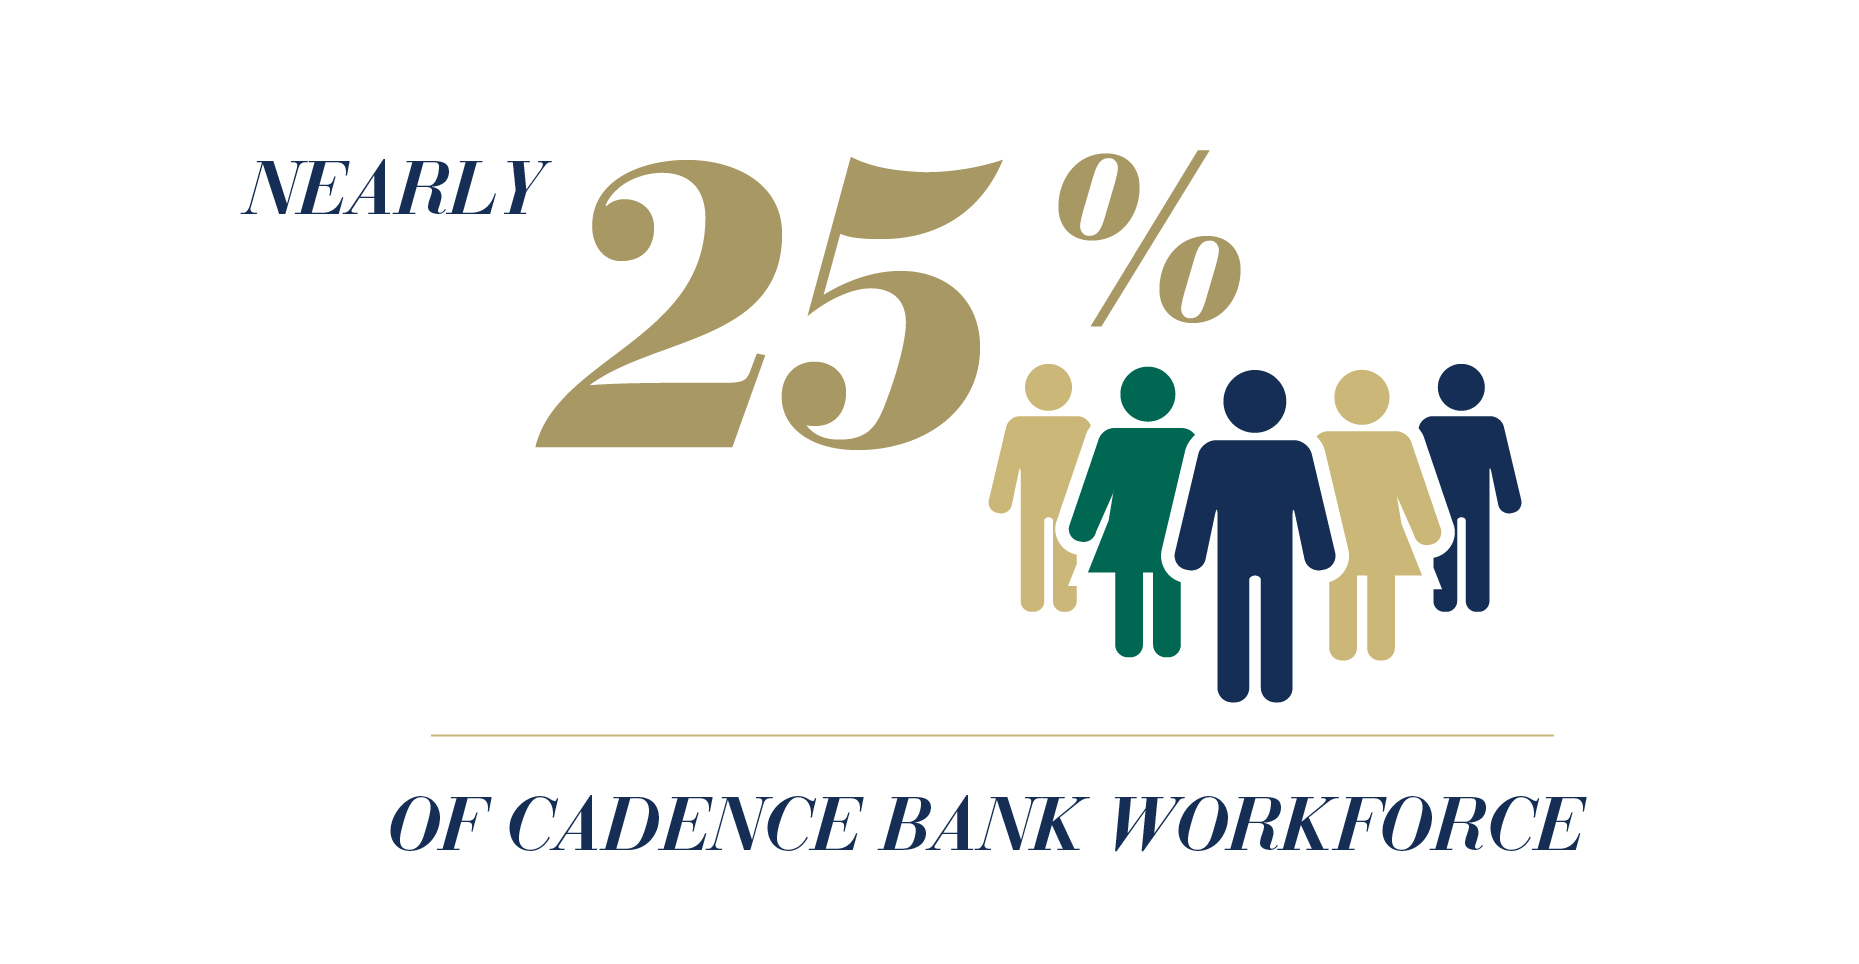 Nearly 25% of Cadence Bank workforce